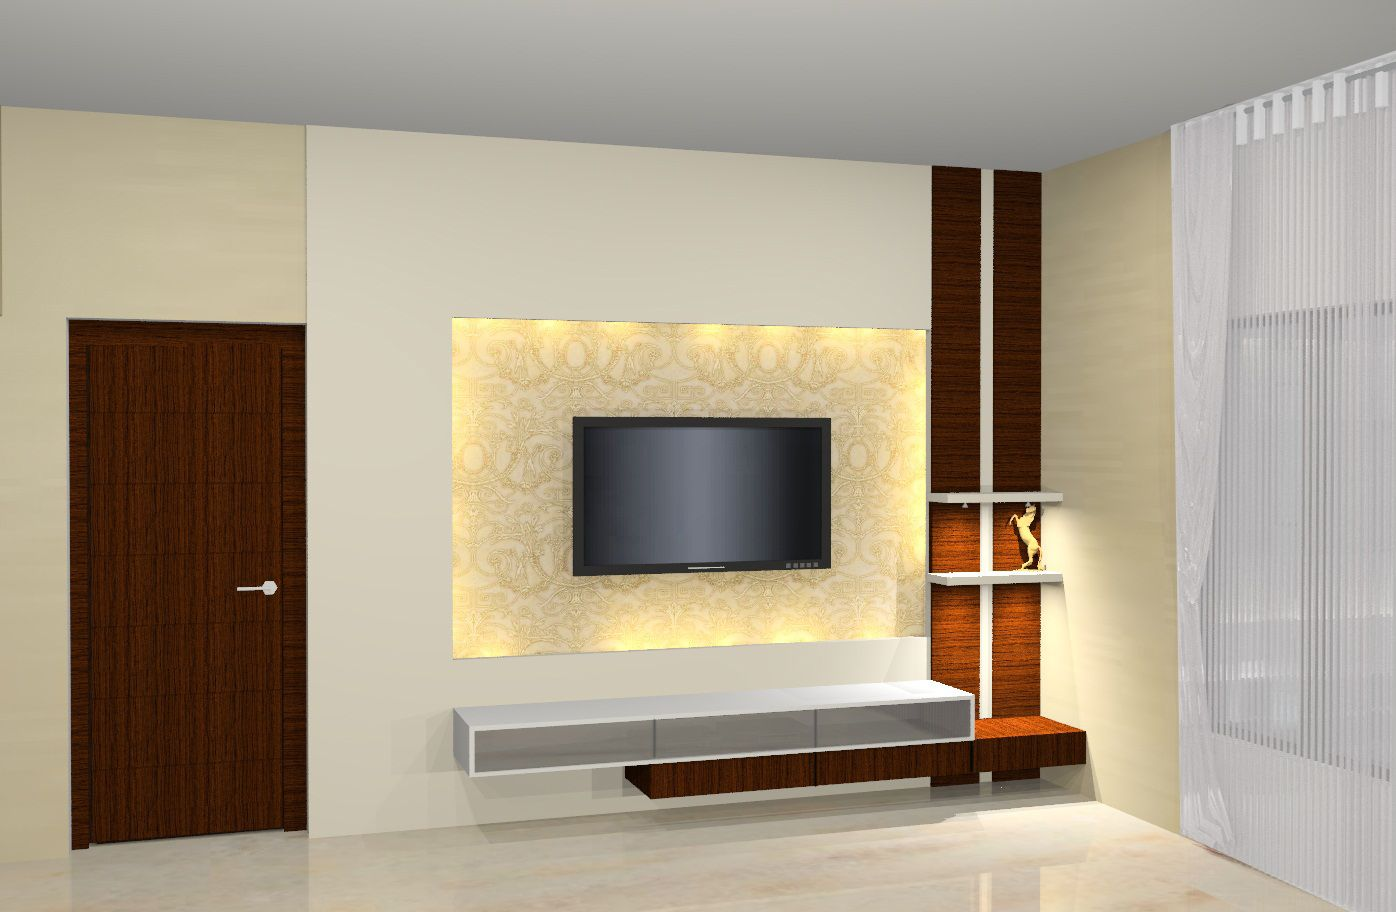 T v unit designs upper family families tv ca - Wall units for living room mumbai ...